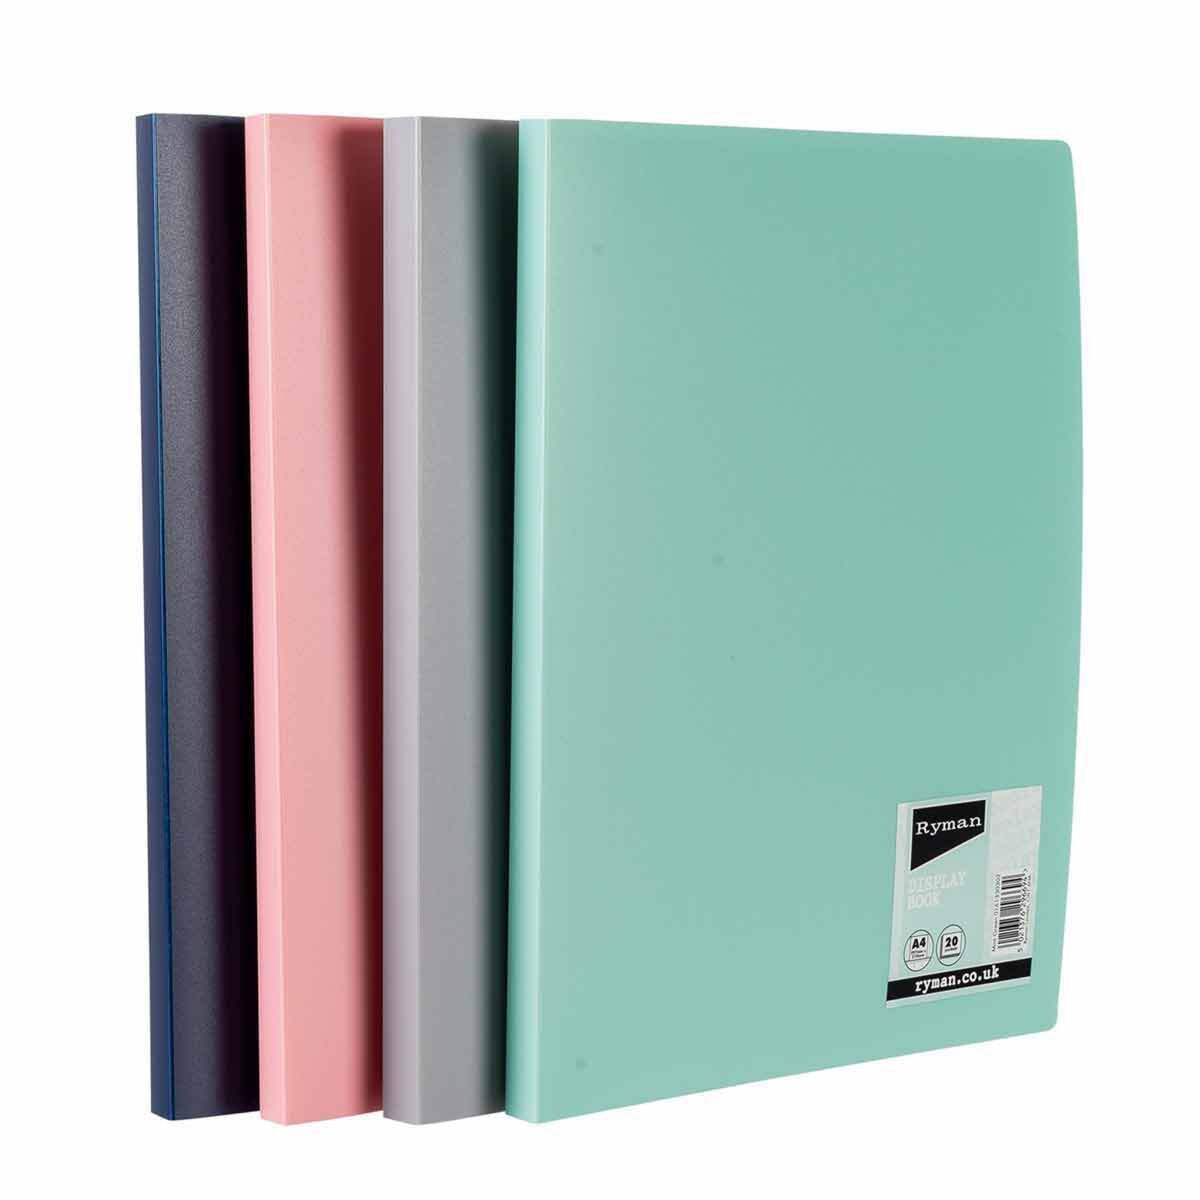 Ryman Pastel Display Book A4 Pack of 8 Assorted